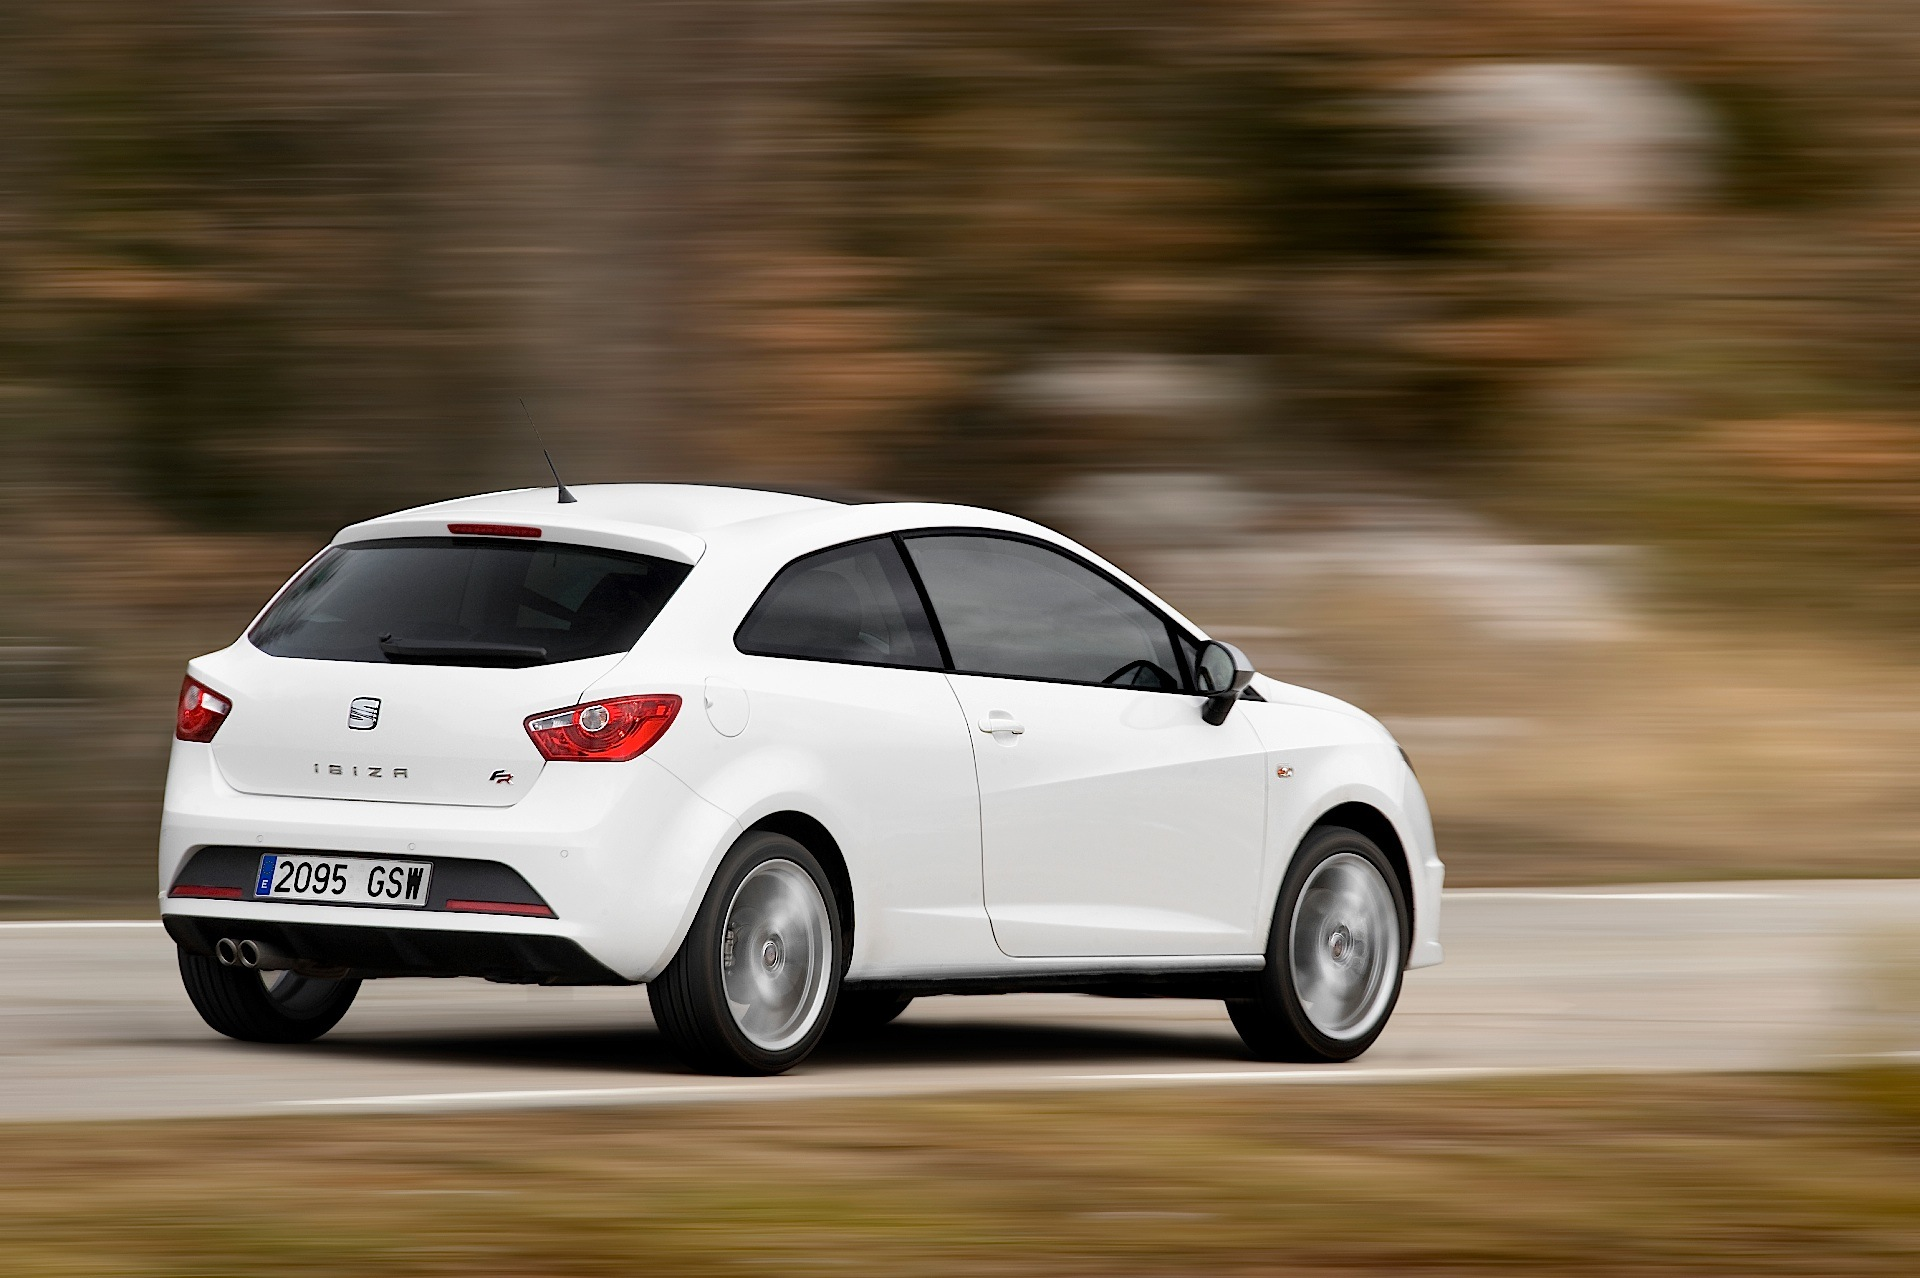 2010 seat ibiza sc pictures information and specs. Black Bedroom Furniture Sets. Home Design Ideas